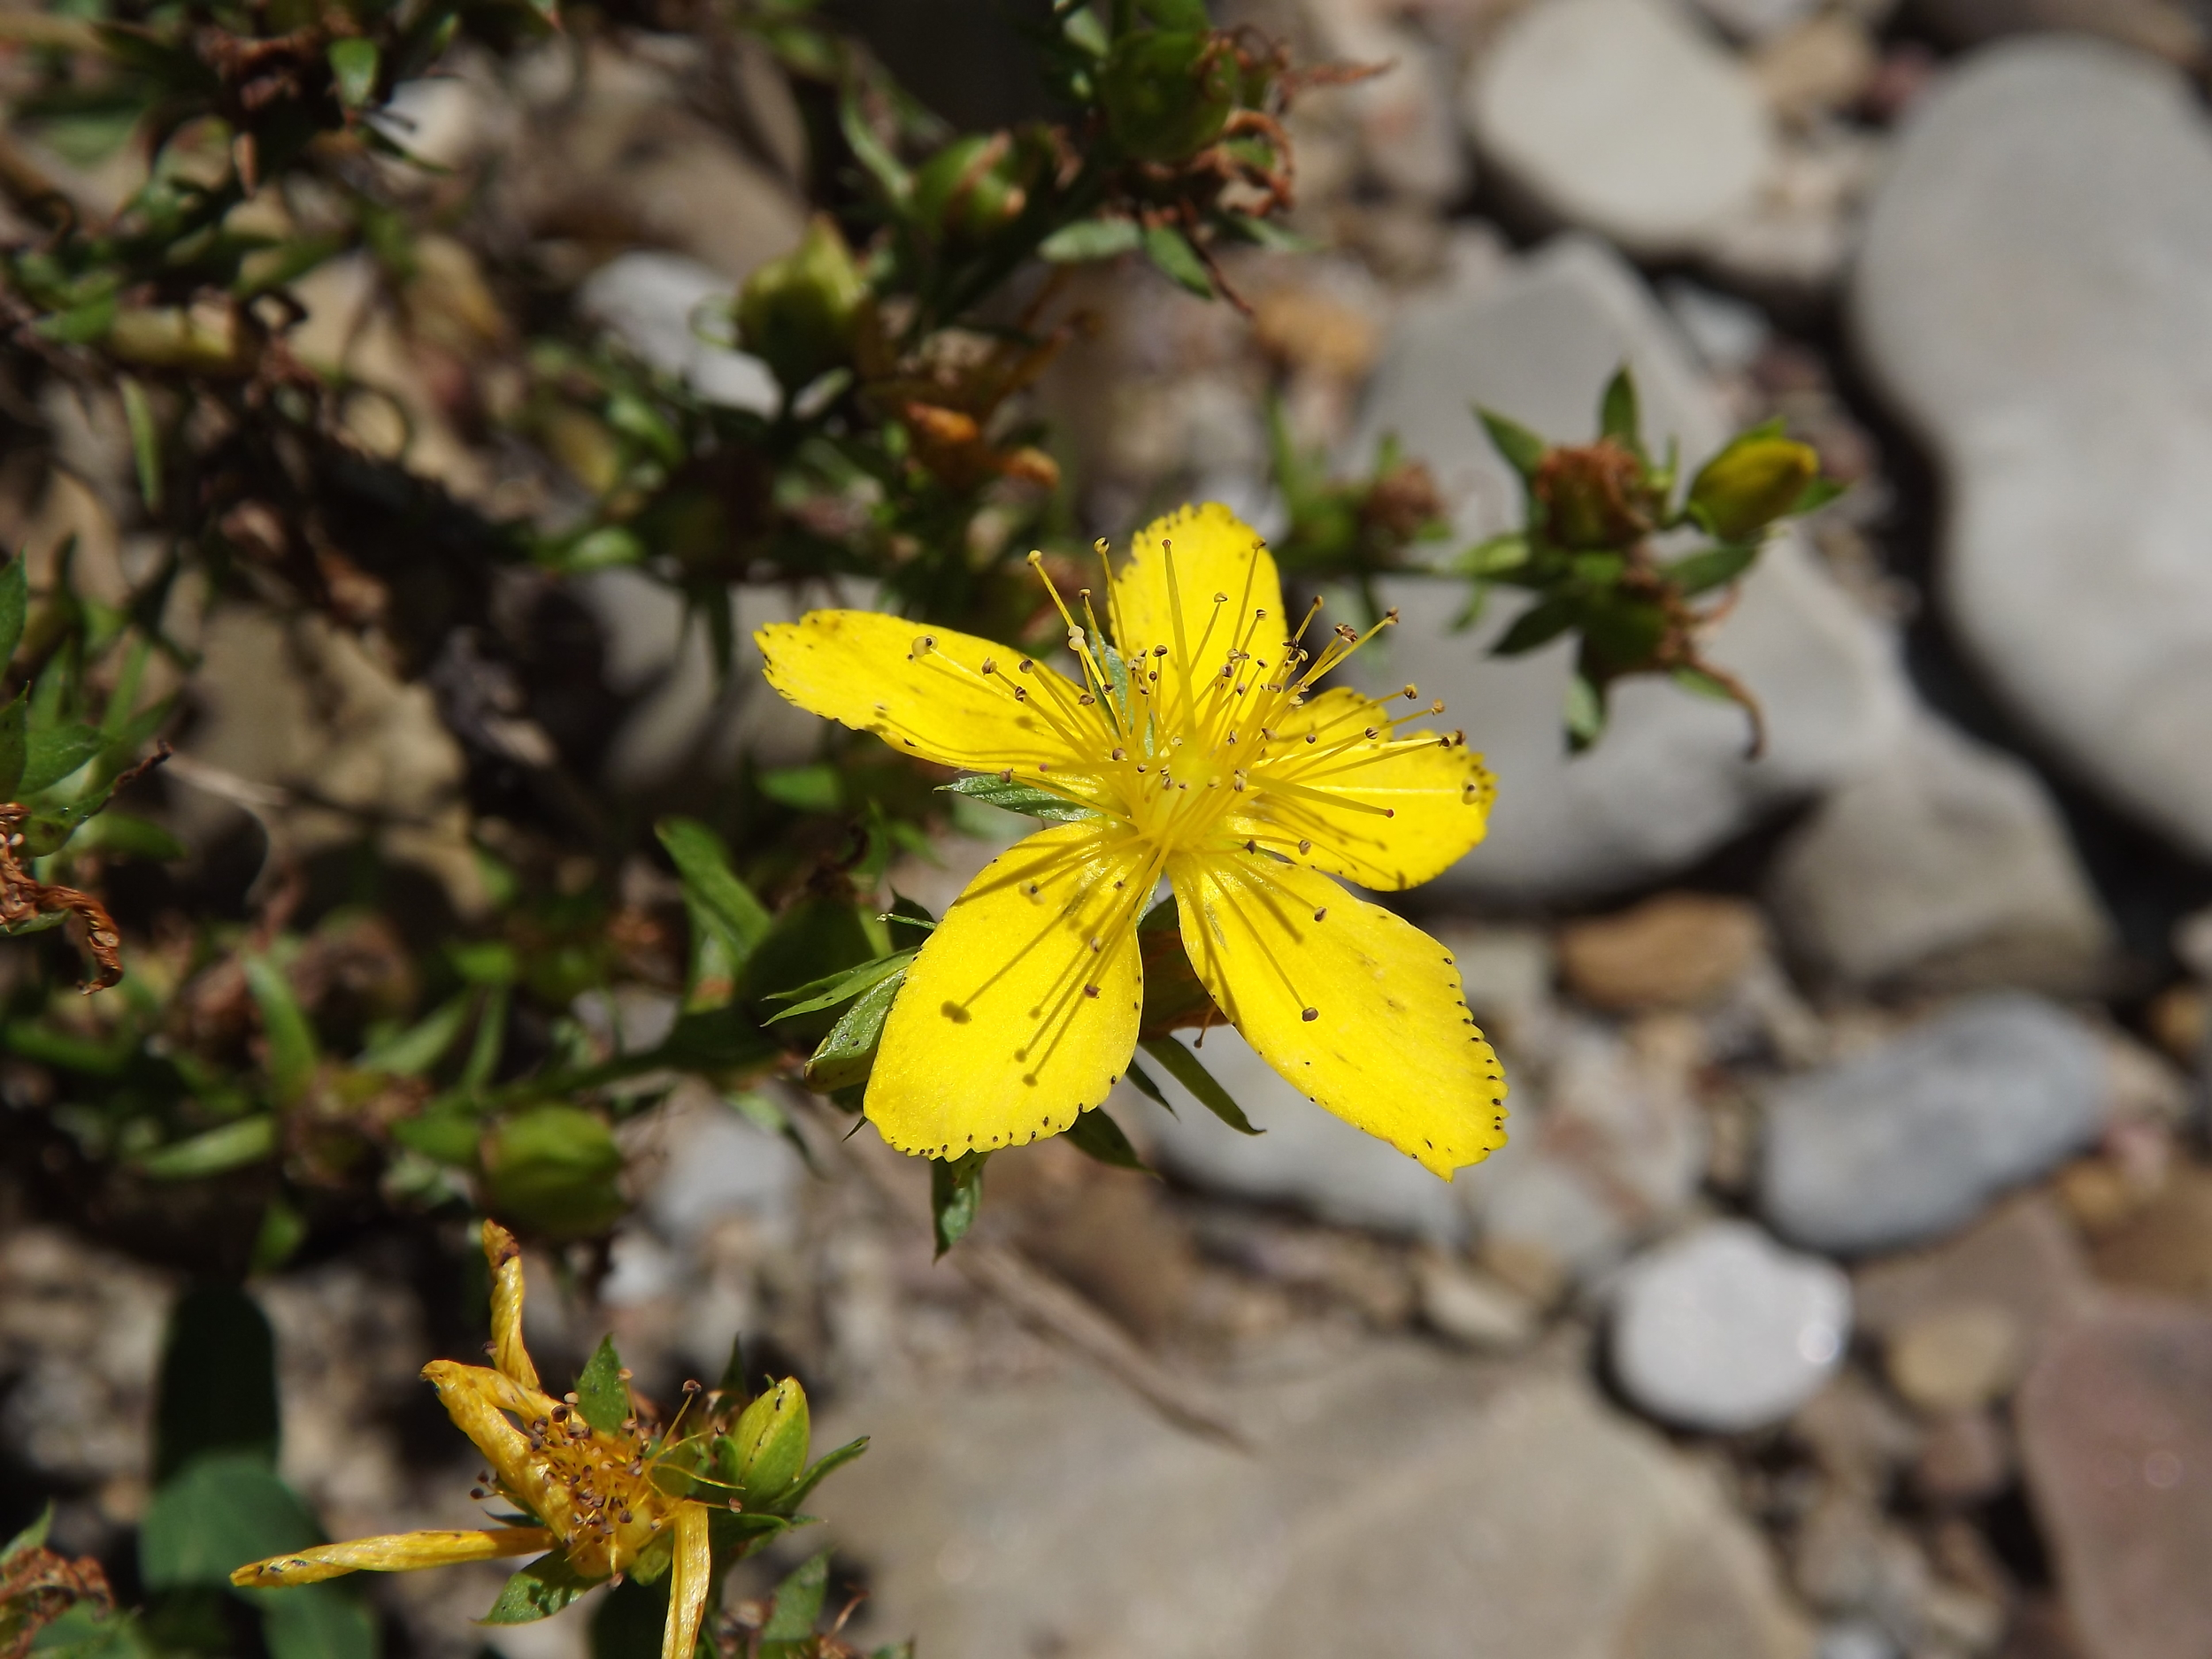 St. John's Wort ( Hypericum perforatum ) -  In the middle of the Main Branch, we found an alluvial island full of wildflowers.  This St. John's Wort was in full bloom on this beautiful sunny day.